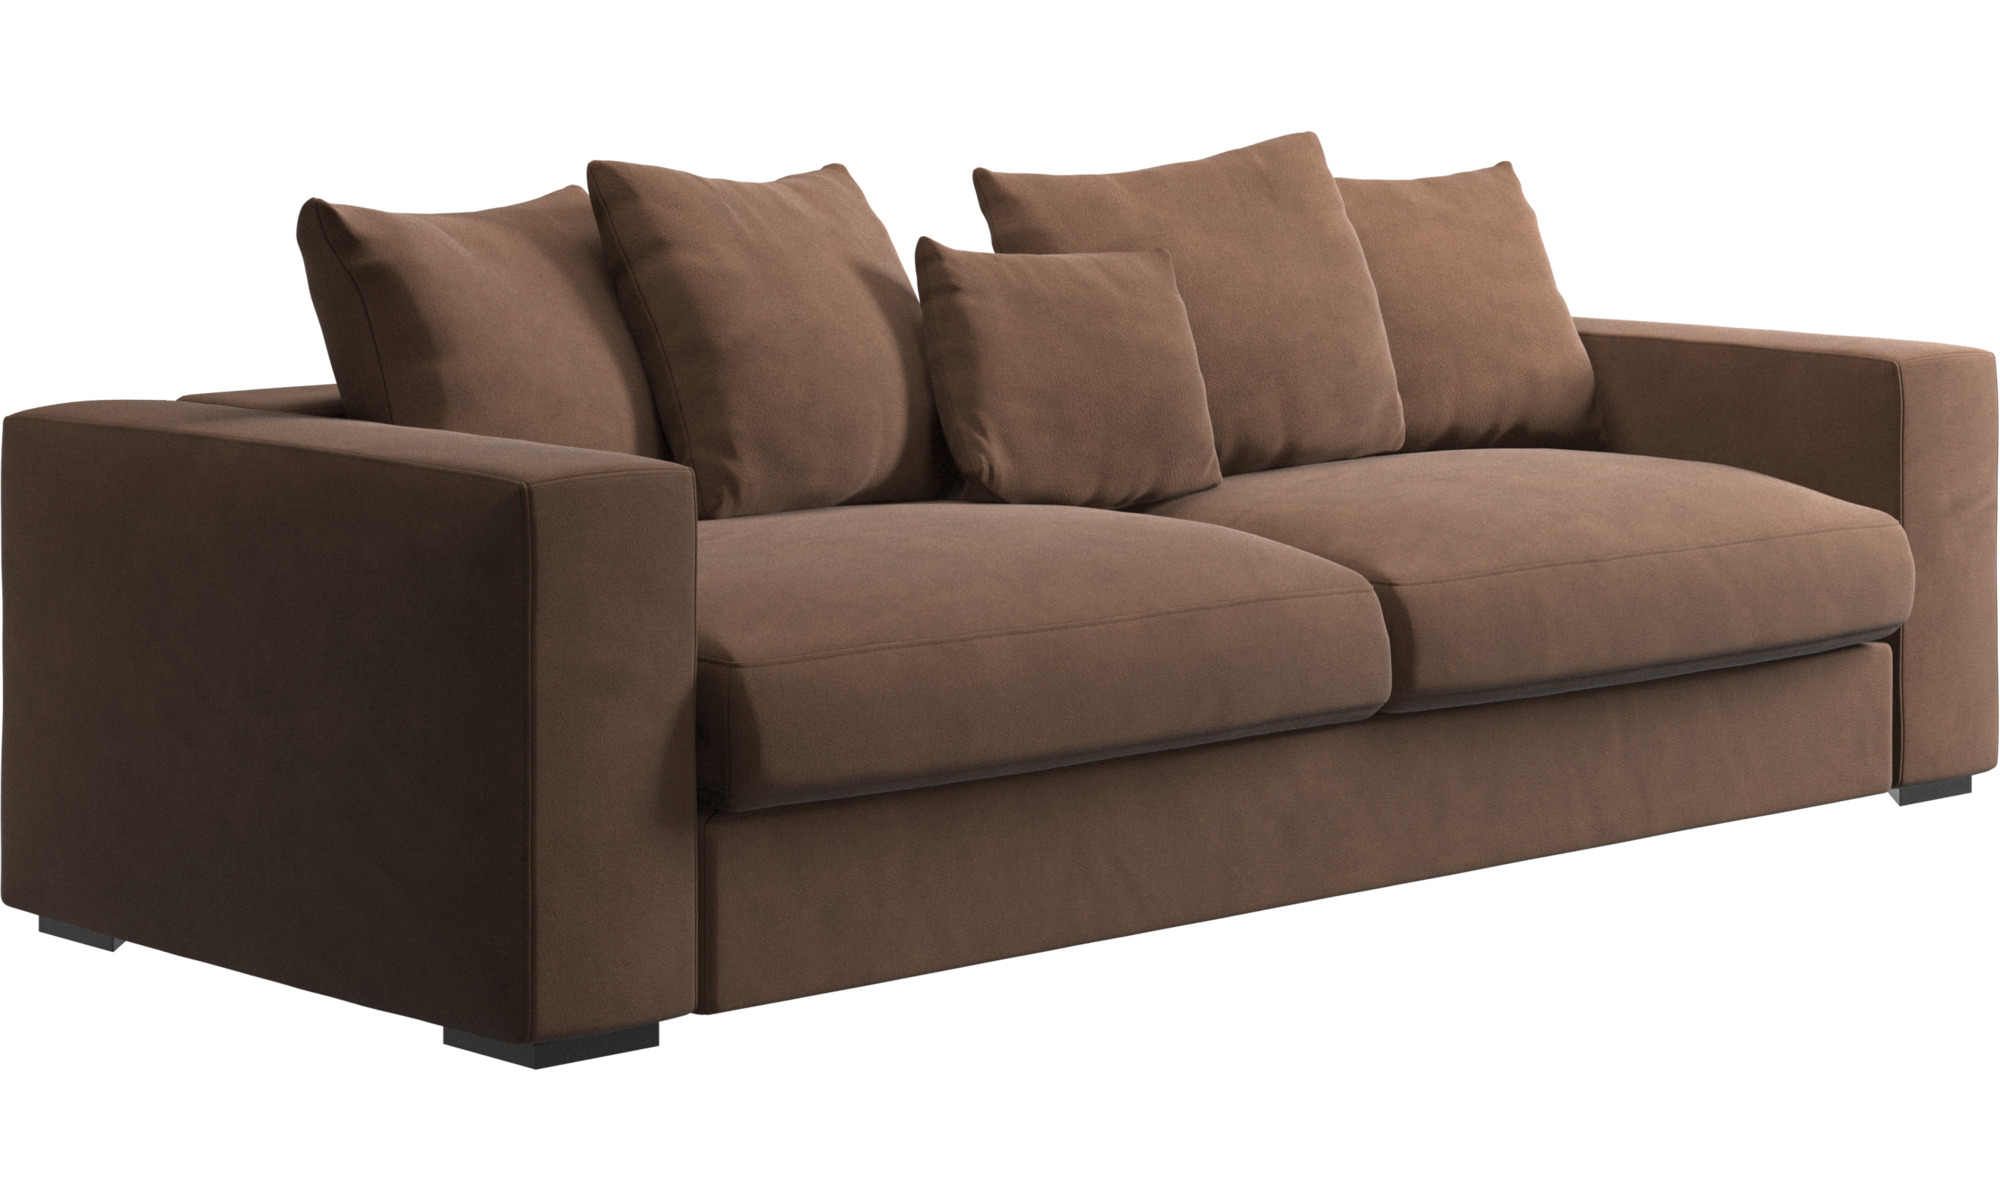 Brown fabric sofas nia brown fabric chaise lounge steal a for Sofas modulares de tela